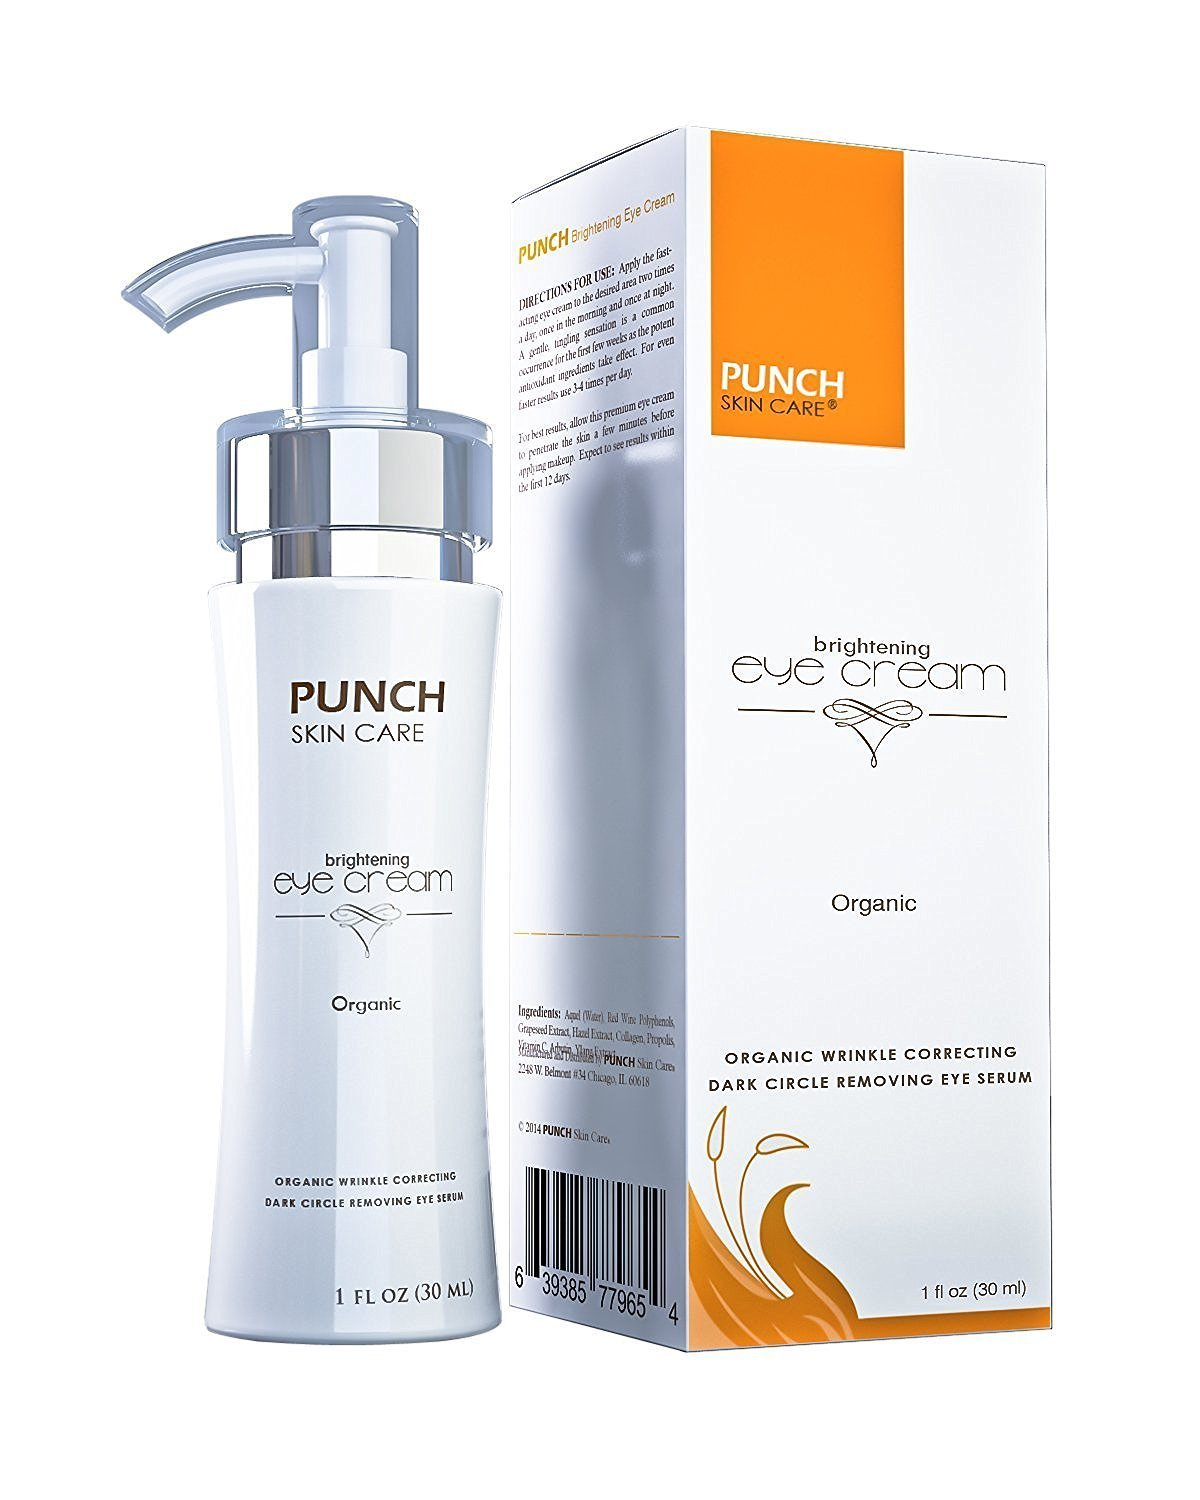 Punch Skin Care's Anti Aging Eye Cream | Anti Wrinkle Moisturizer Serum for Face and Eyes | Reduce Dark Circles, Puffiness, Under Eye Bags | Natural & Organic Day and Night Face Cream, (1 fl. oz)